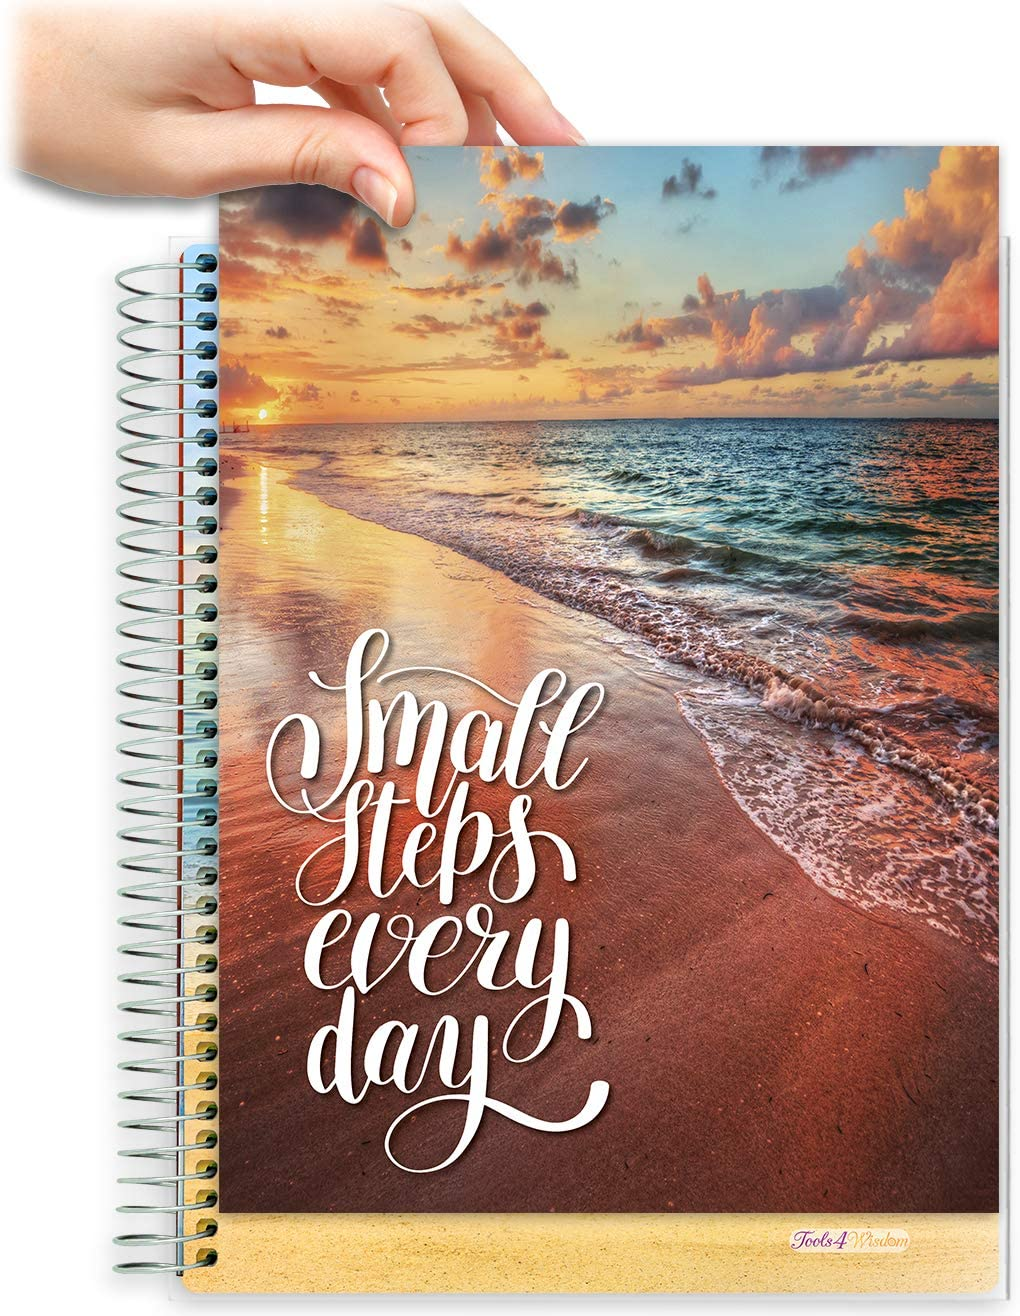 8.5x11 Customizable Softcover Planner • April 2021 to June 2022 Academic Year • Small Steps